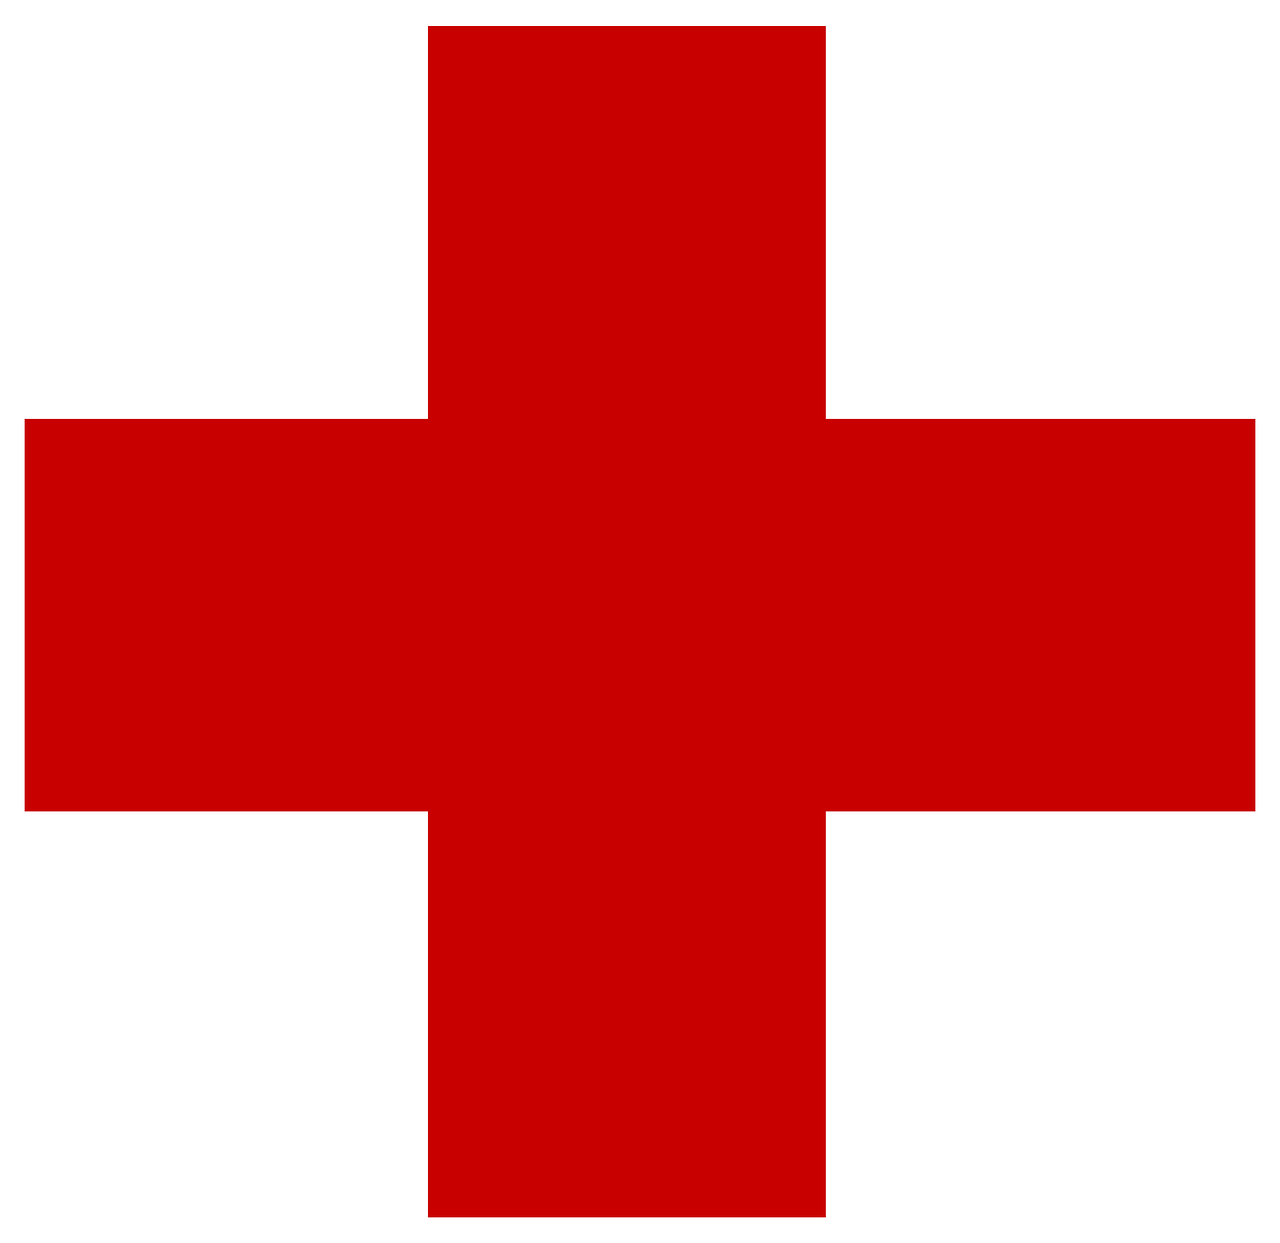 American red cross blood drive clipart svg free Red Cross offers three ways to make saving lives easier than ever svg free